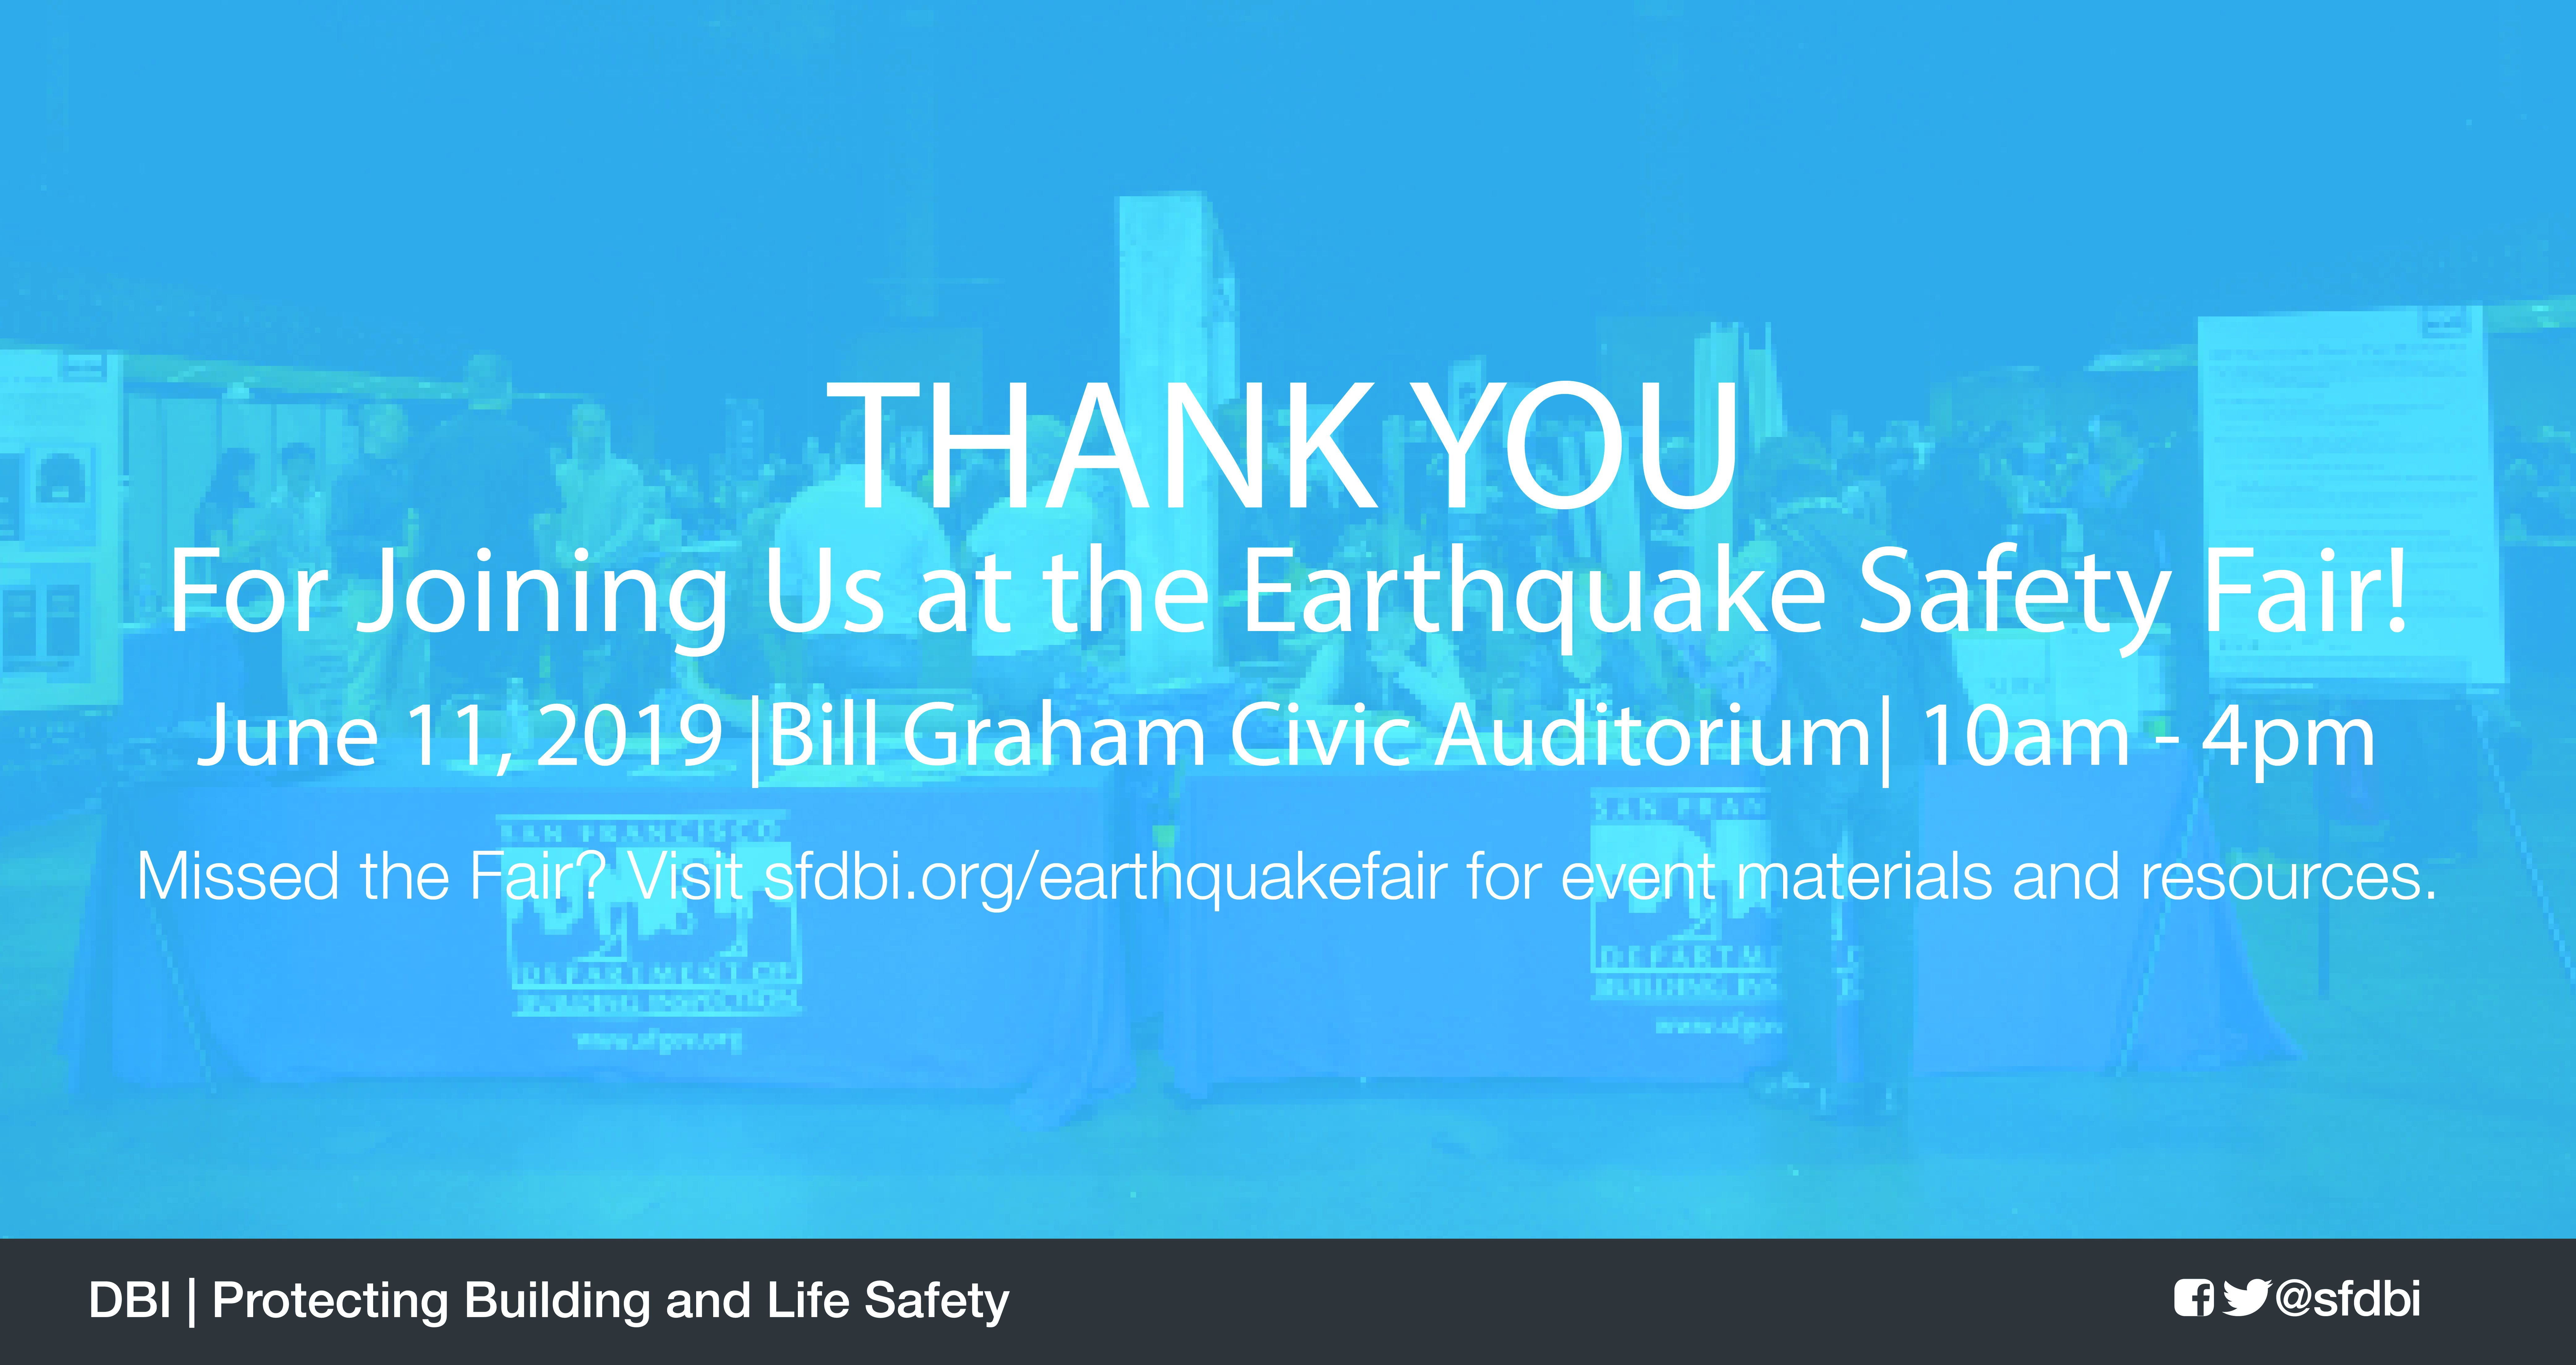 Thank you for attending the Earthquake Safety Fair